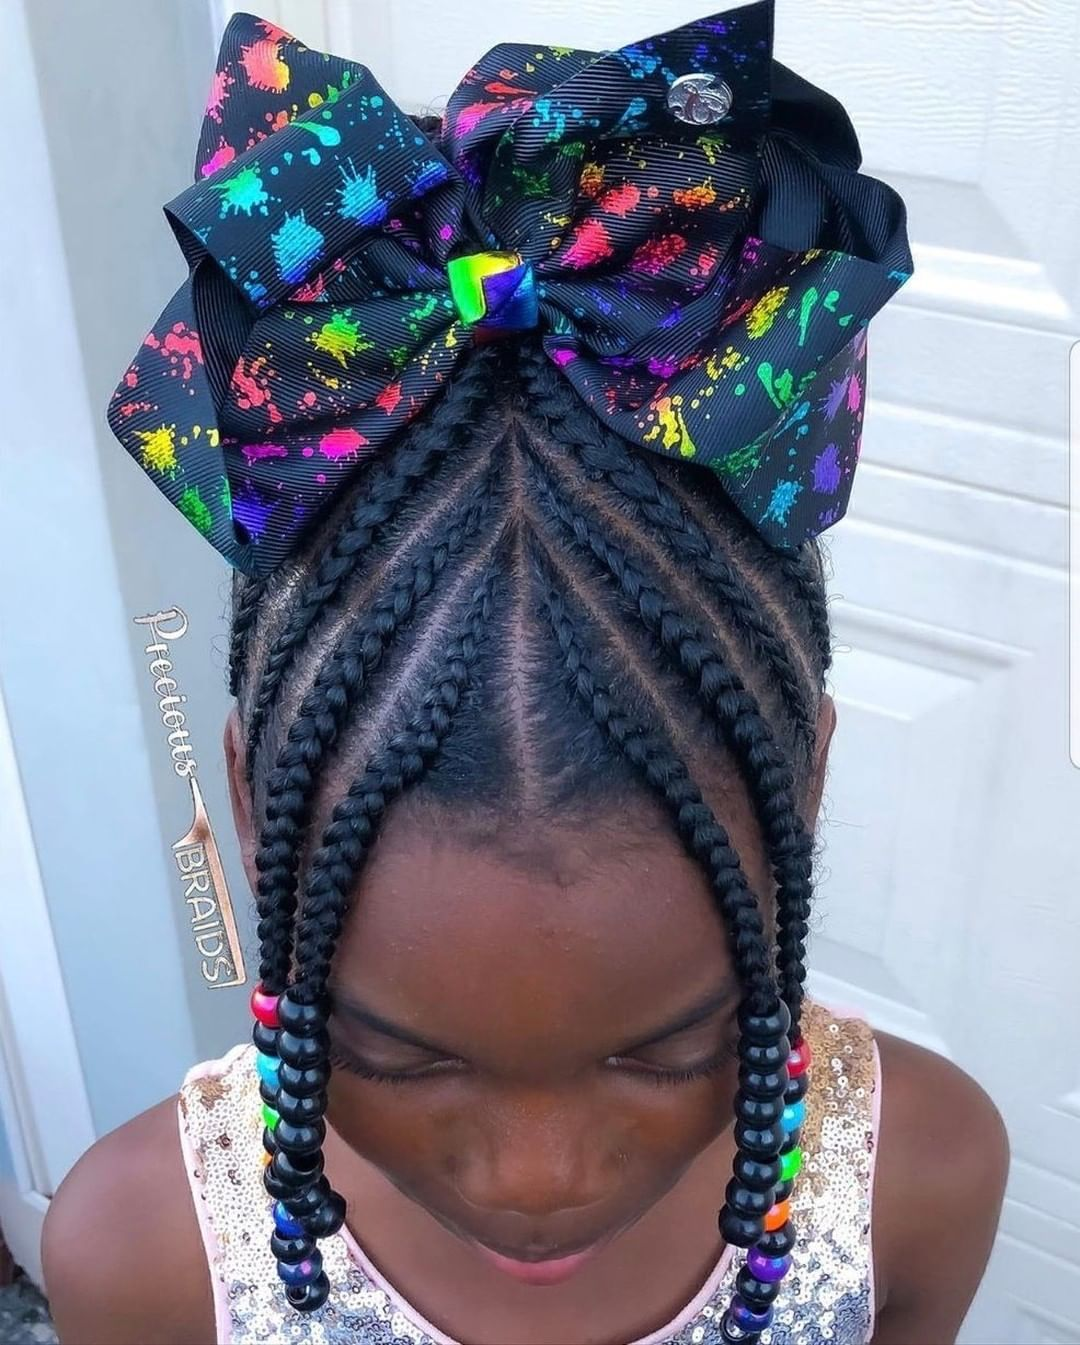 Kidshairstyles Kidsbraids On Instagram Featured Preciiouskids Follow Kissegirl Bea In 2020 Black Kids Hairstyles Girls Hairstyles Braids Kids Hairstyles Girls